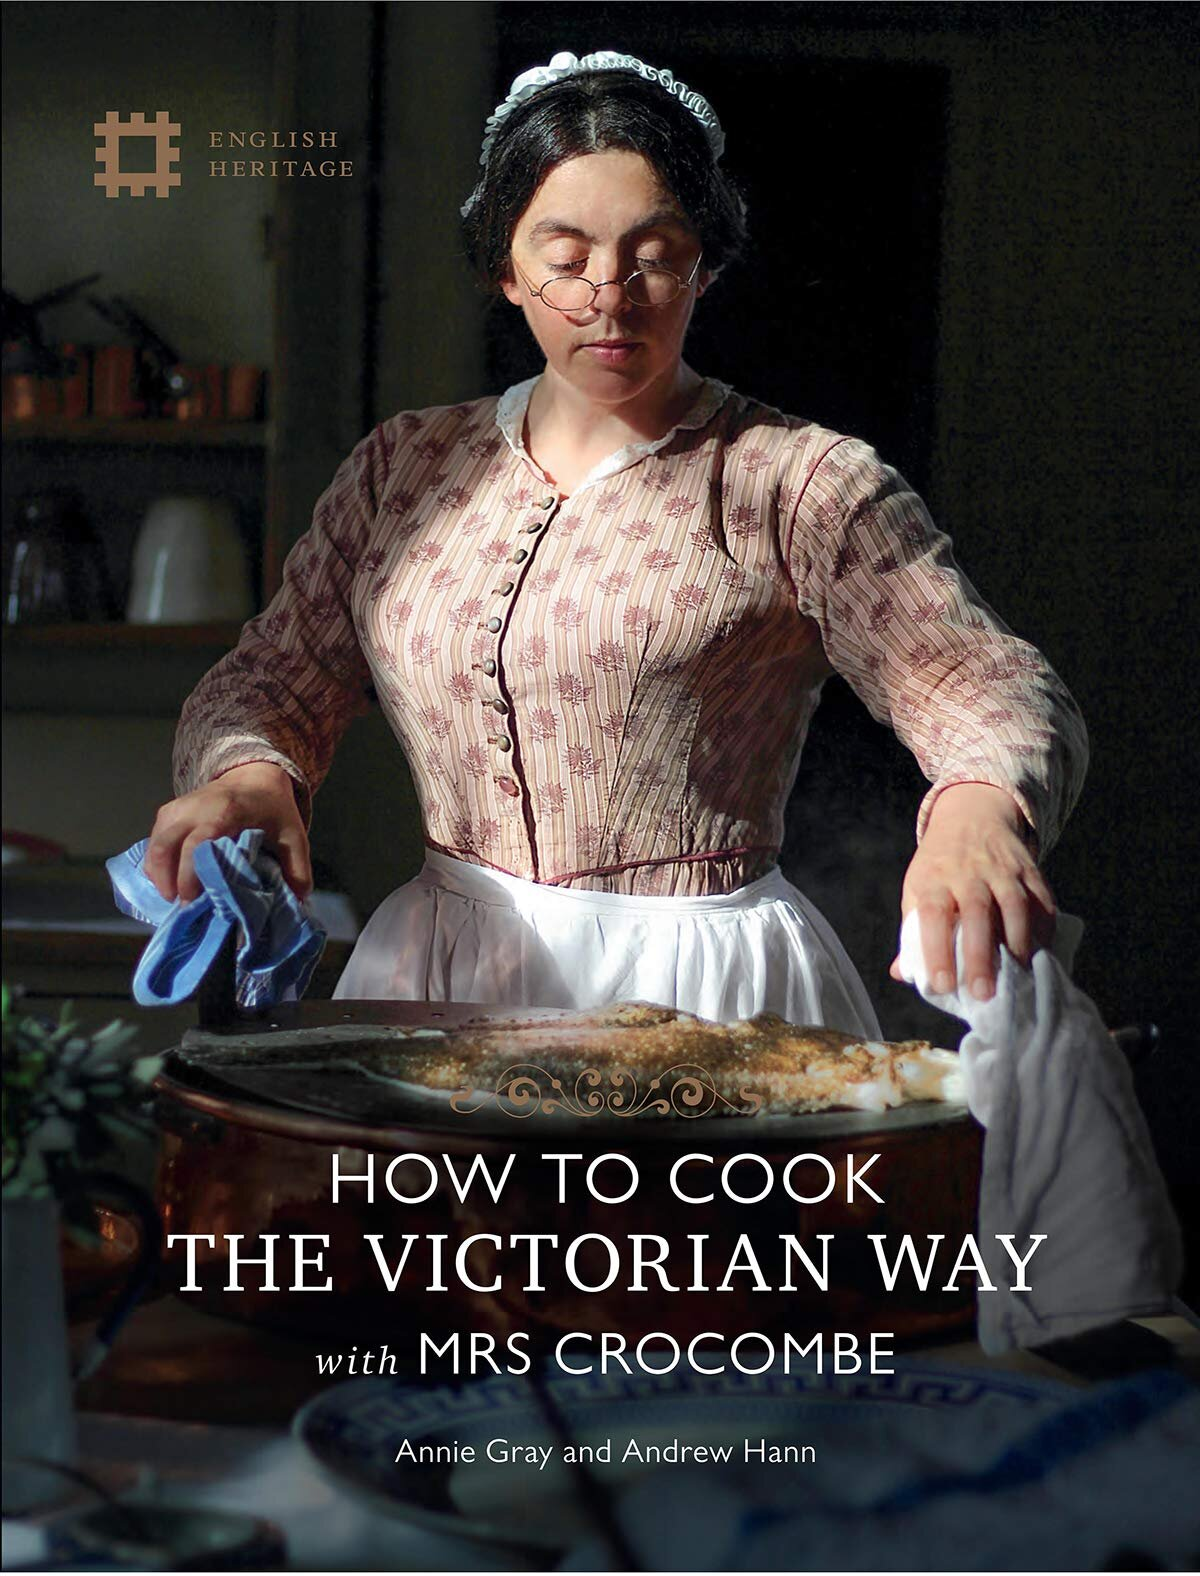 How To Cook The Victorian Way with Mrs Crocombe Book Cover